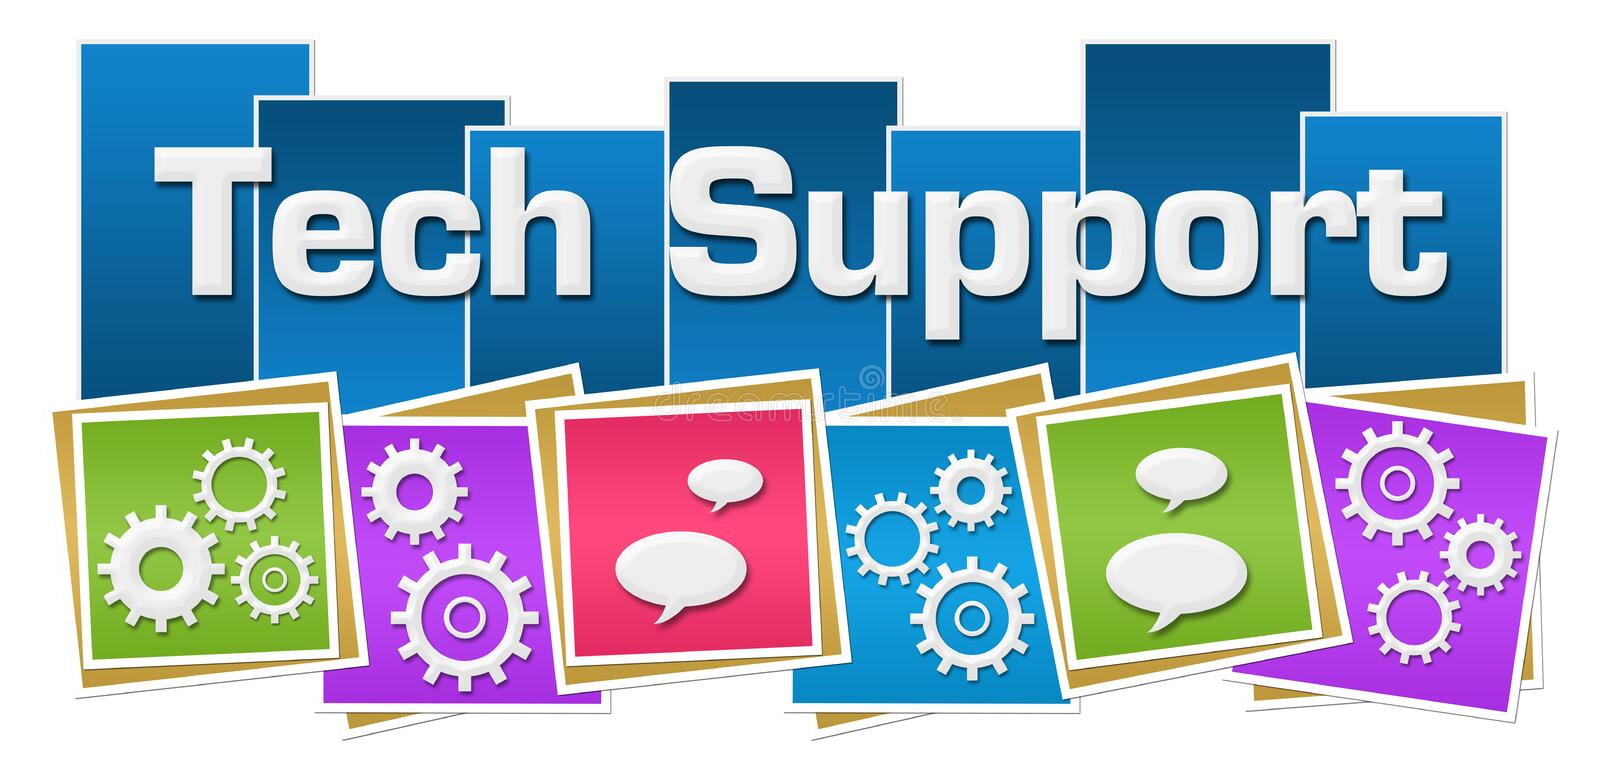 Tech Support Colorful Squares Gears Bottom. Tech support text written over vibrant background with conceptual symbols vector illustration